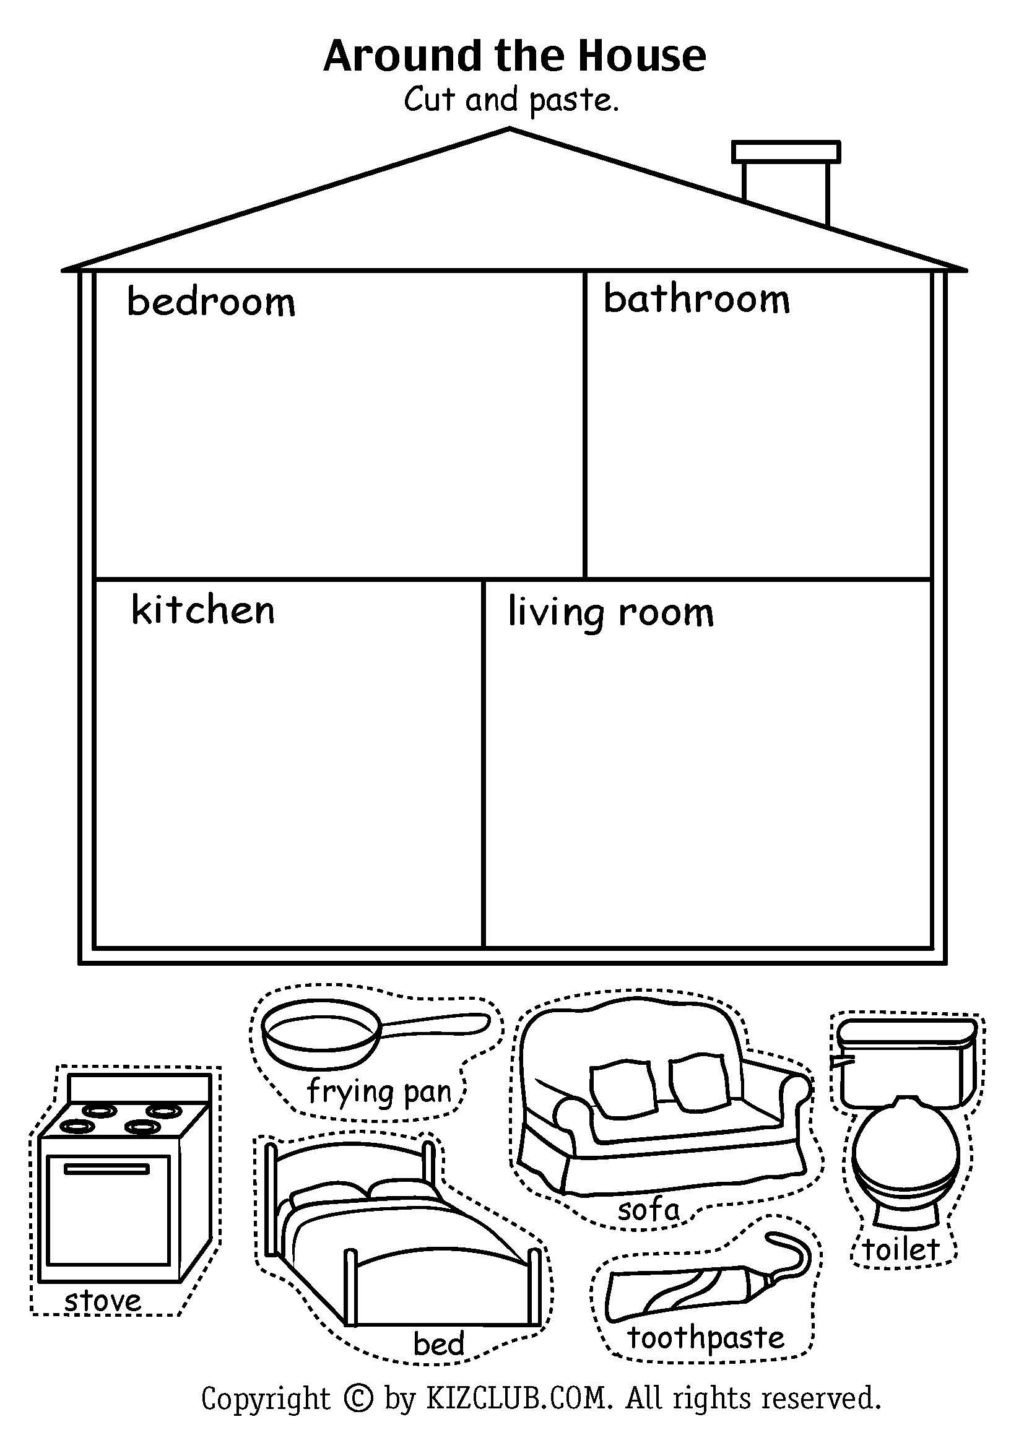 fabulous home worksheets for kindergarten my school safety in the activities child worksheet 1024x1448